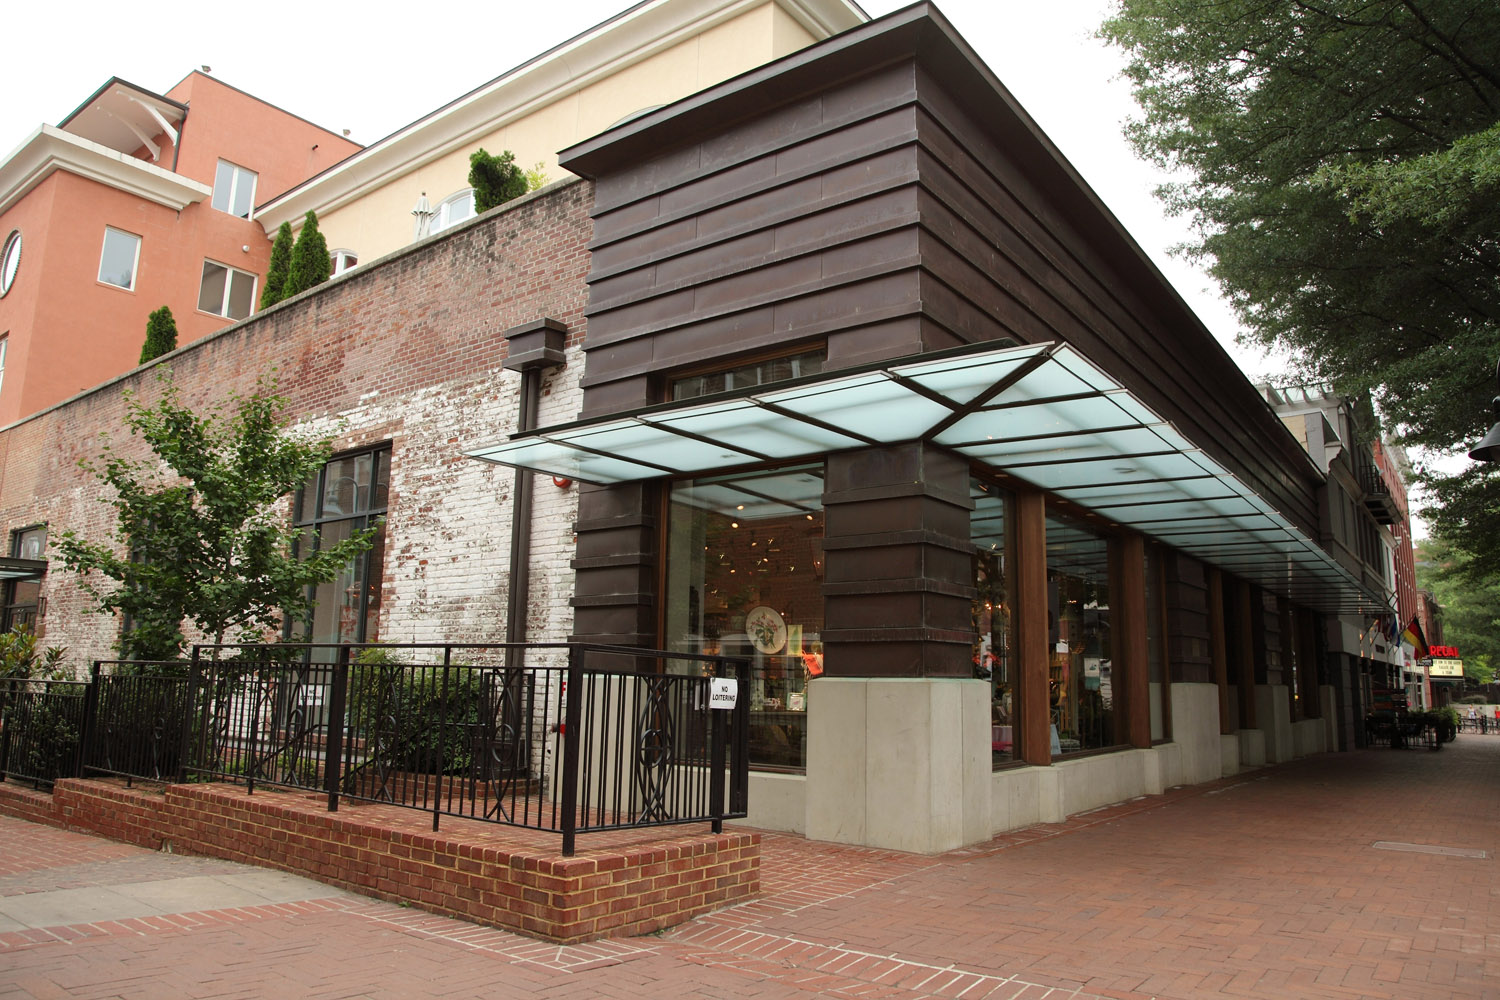 Stylebeat stylish store caspari in charlottesville va for Retail shop exterior design